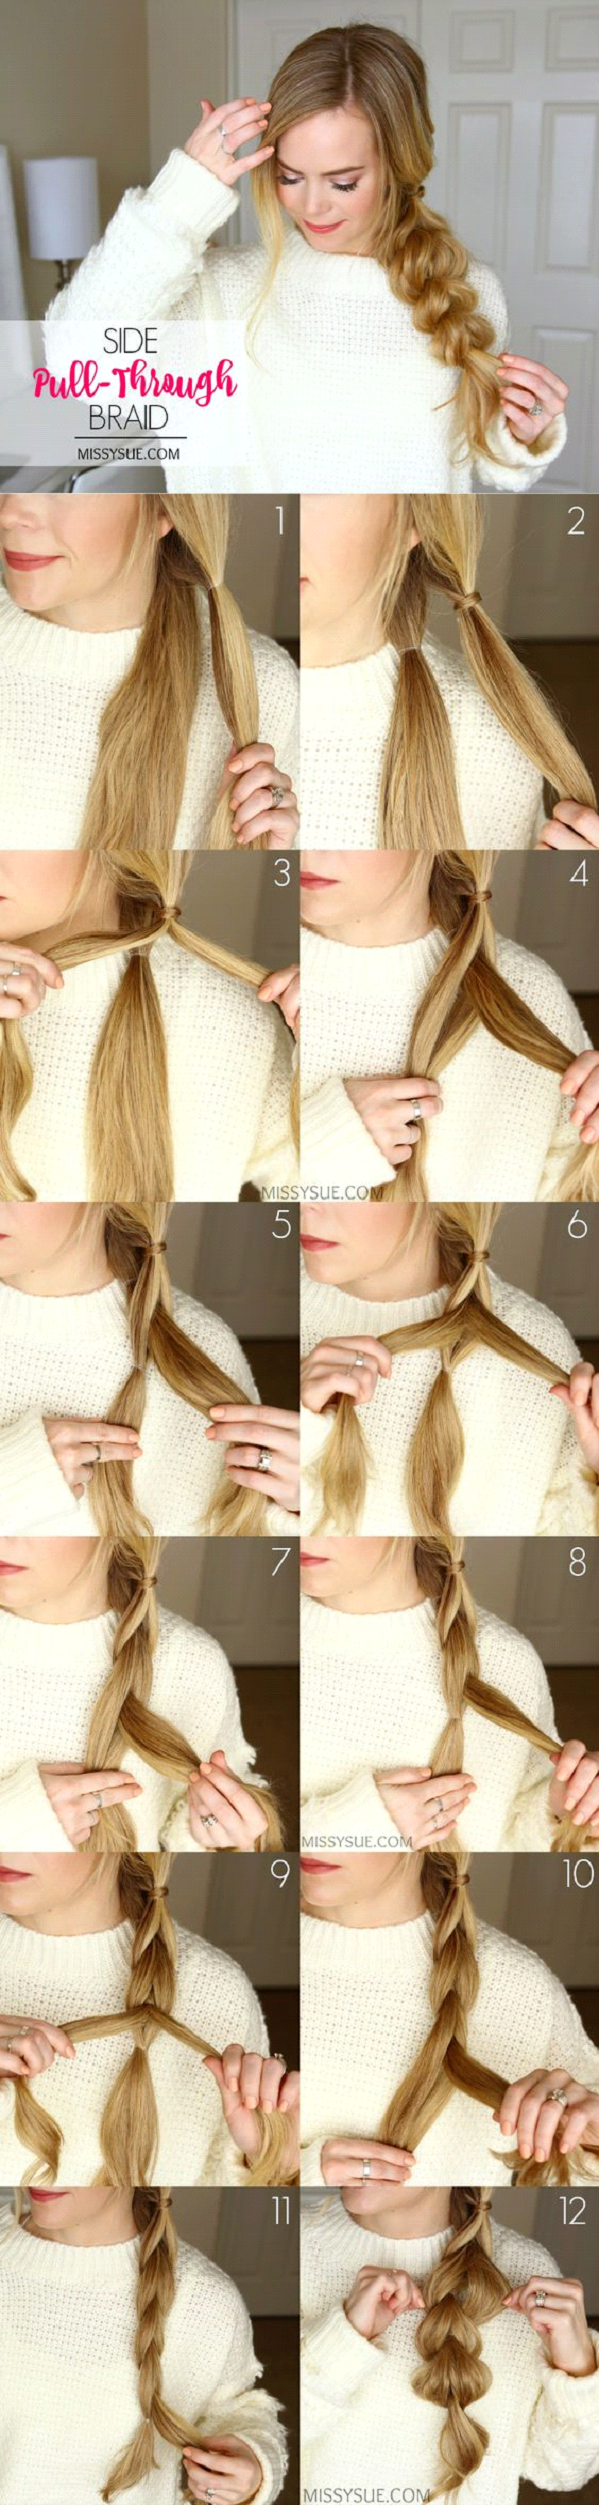 Pin by shelby wright on cute hairstyles in pinterest hair